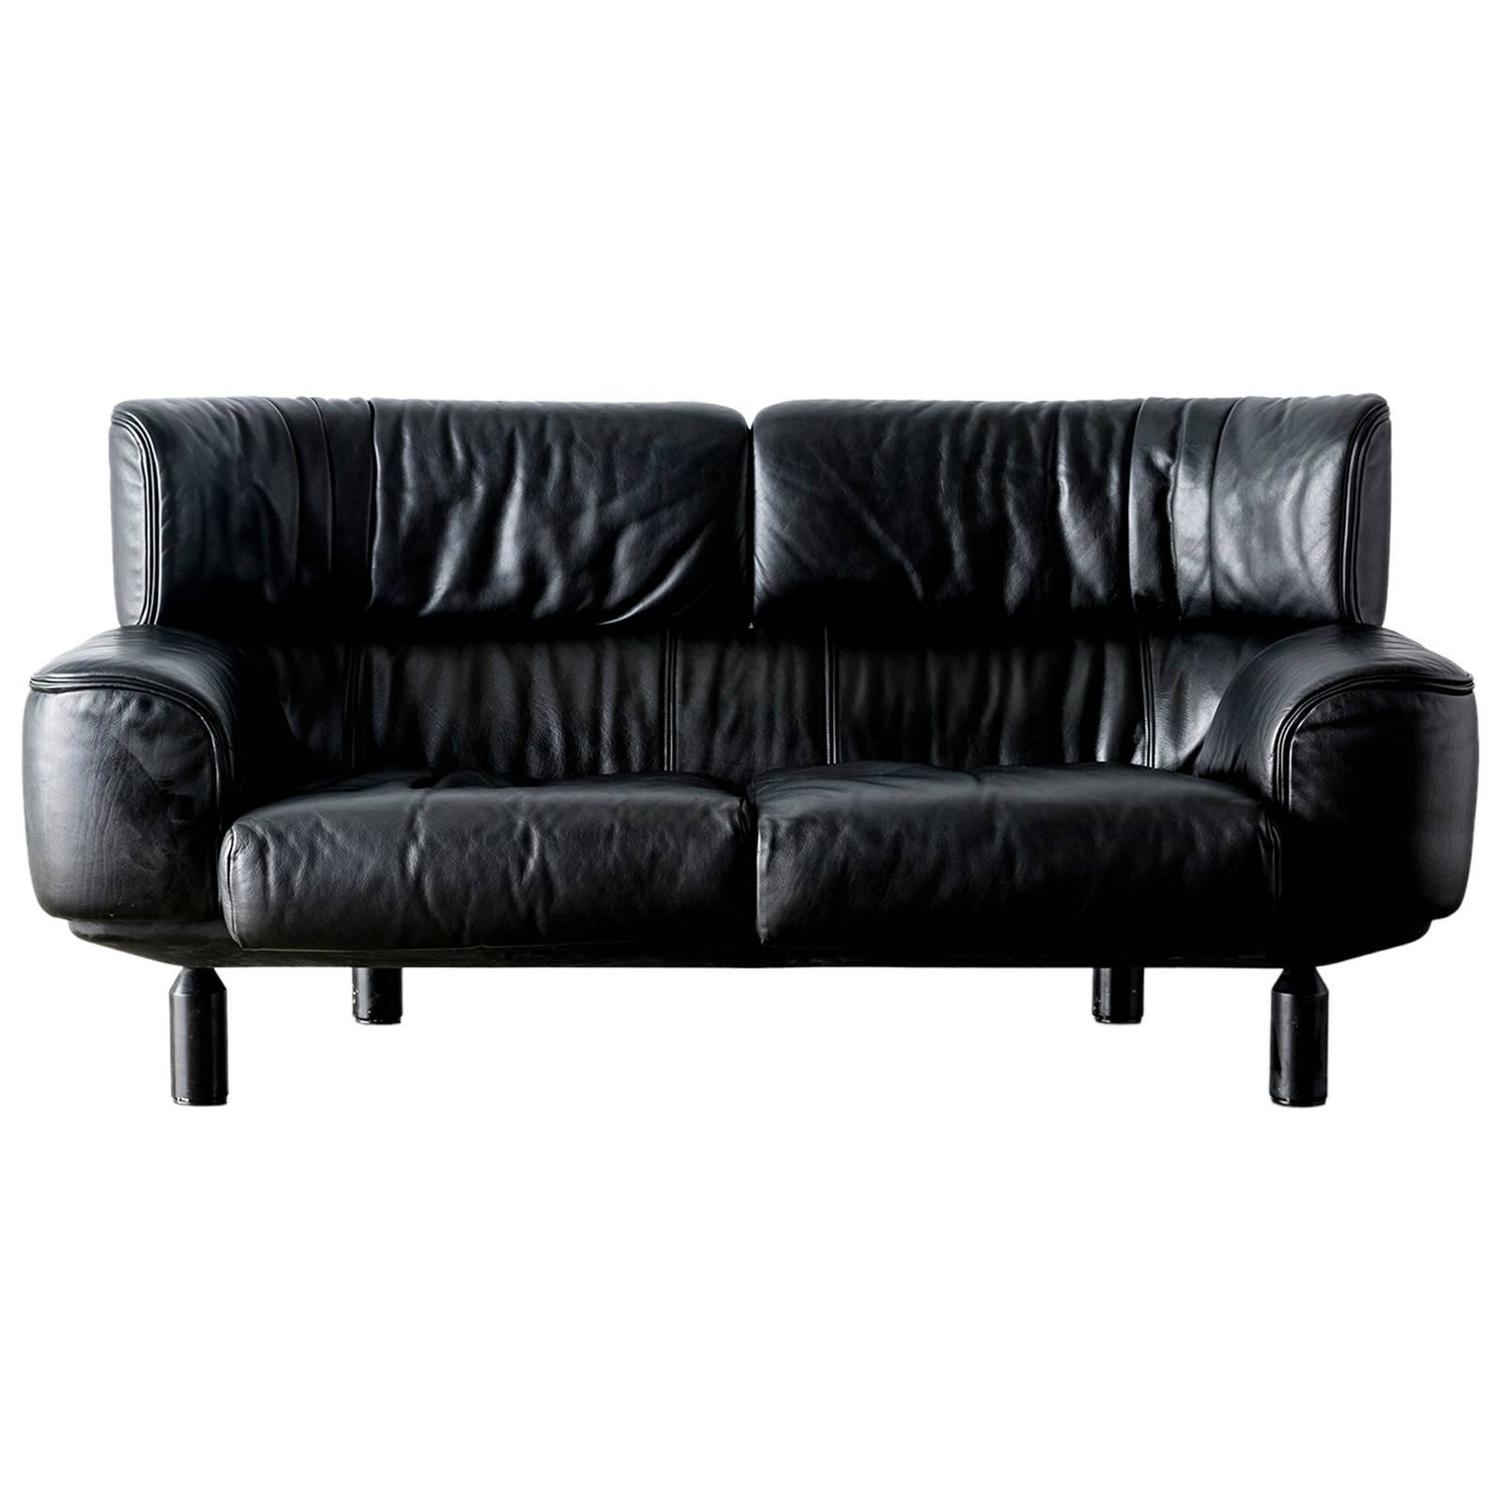 Cassina Furniture Sofas Chairs Tables & More 292 For Sale at